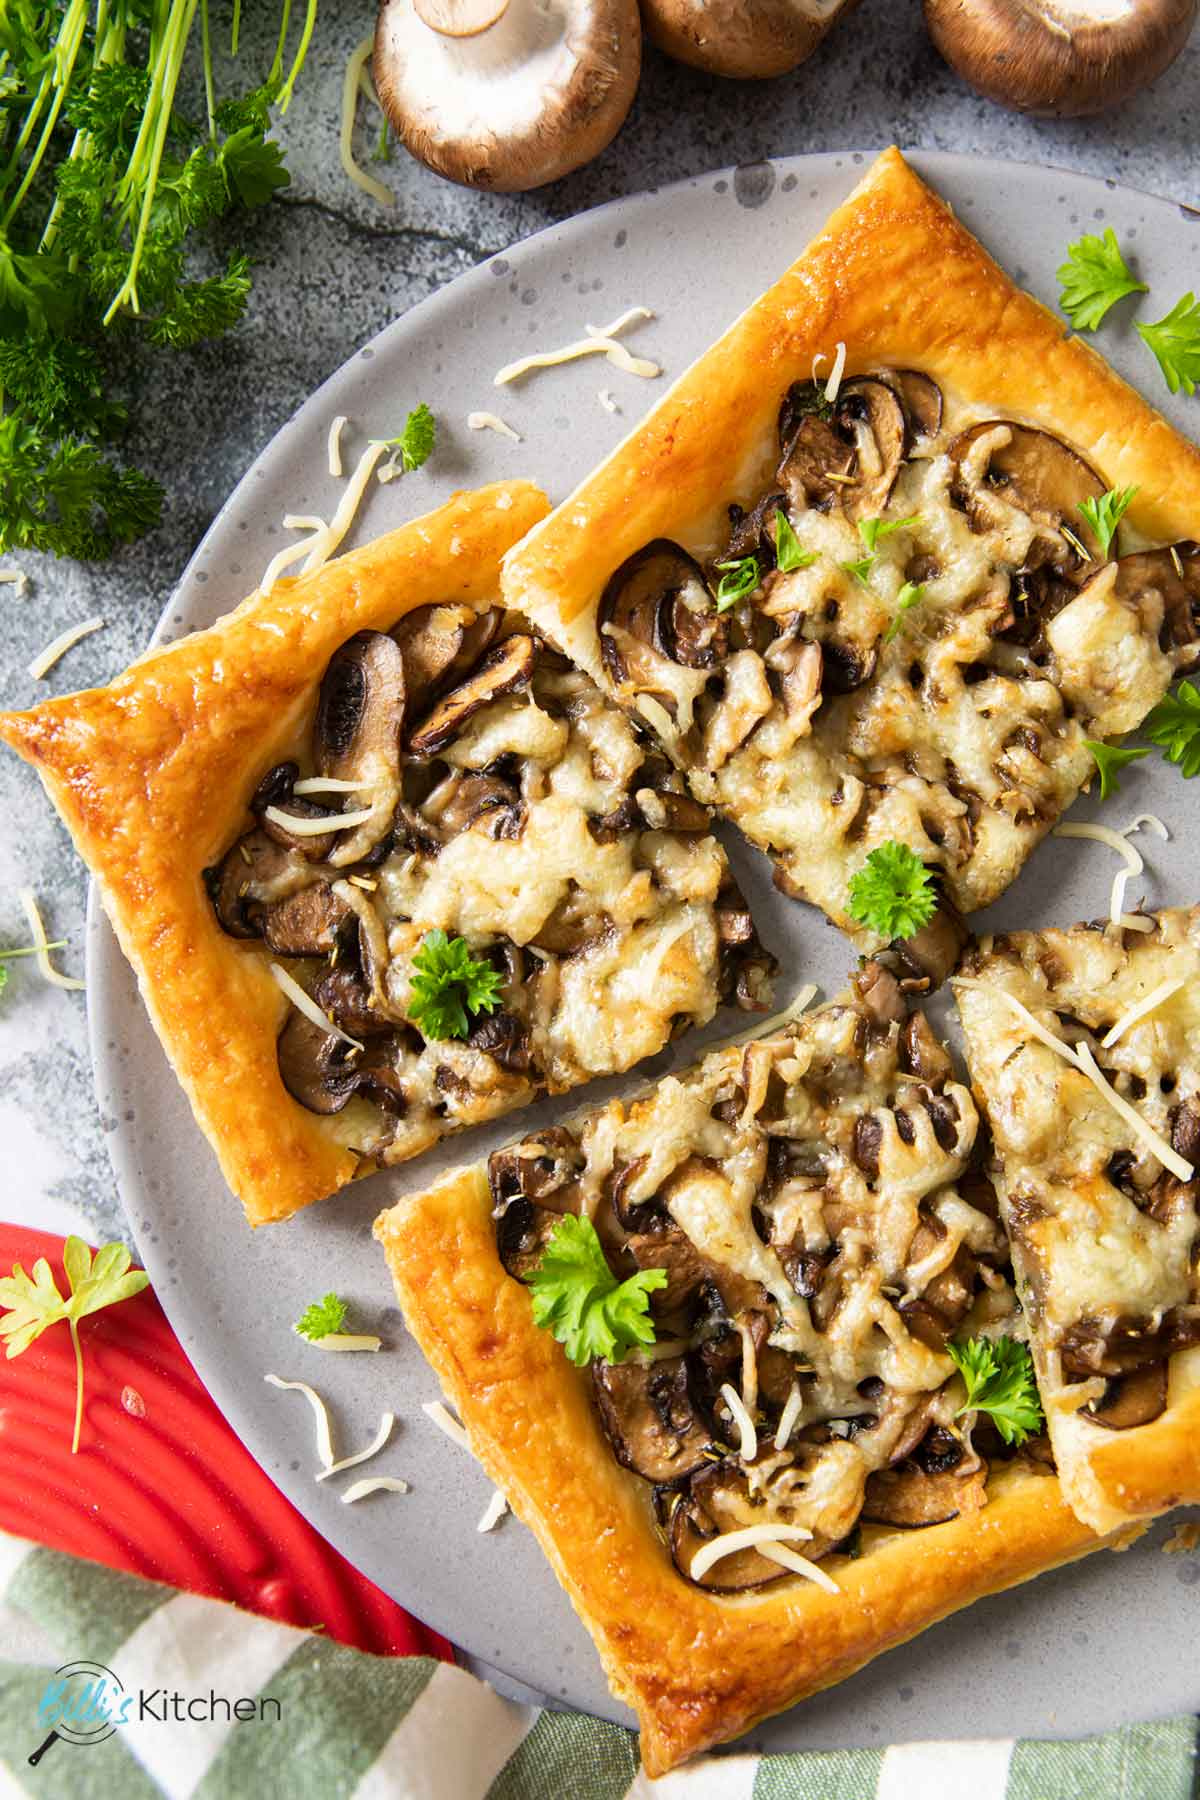 An overhead shot of slices of mushroom tart on a plate, with some shredded cheese and fresh parsley on top; cremini mushrooms are next to the plate.